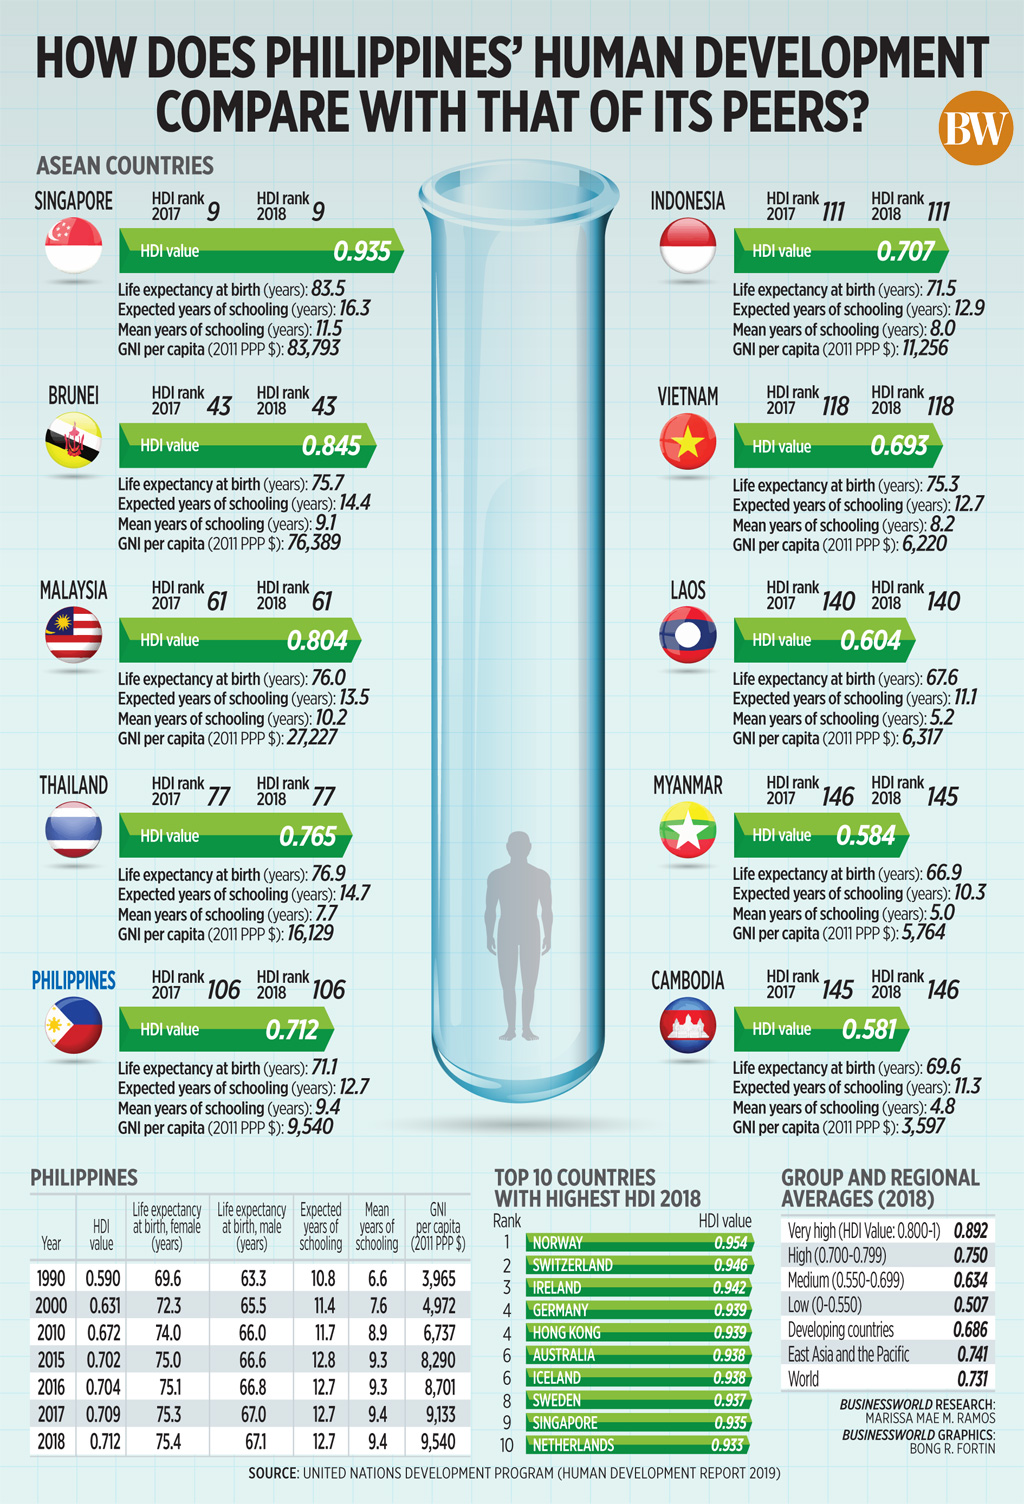 How does Philippines' human development compare with that of its peers?